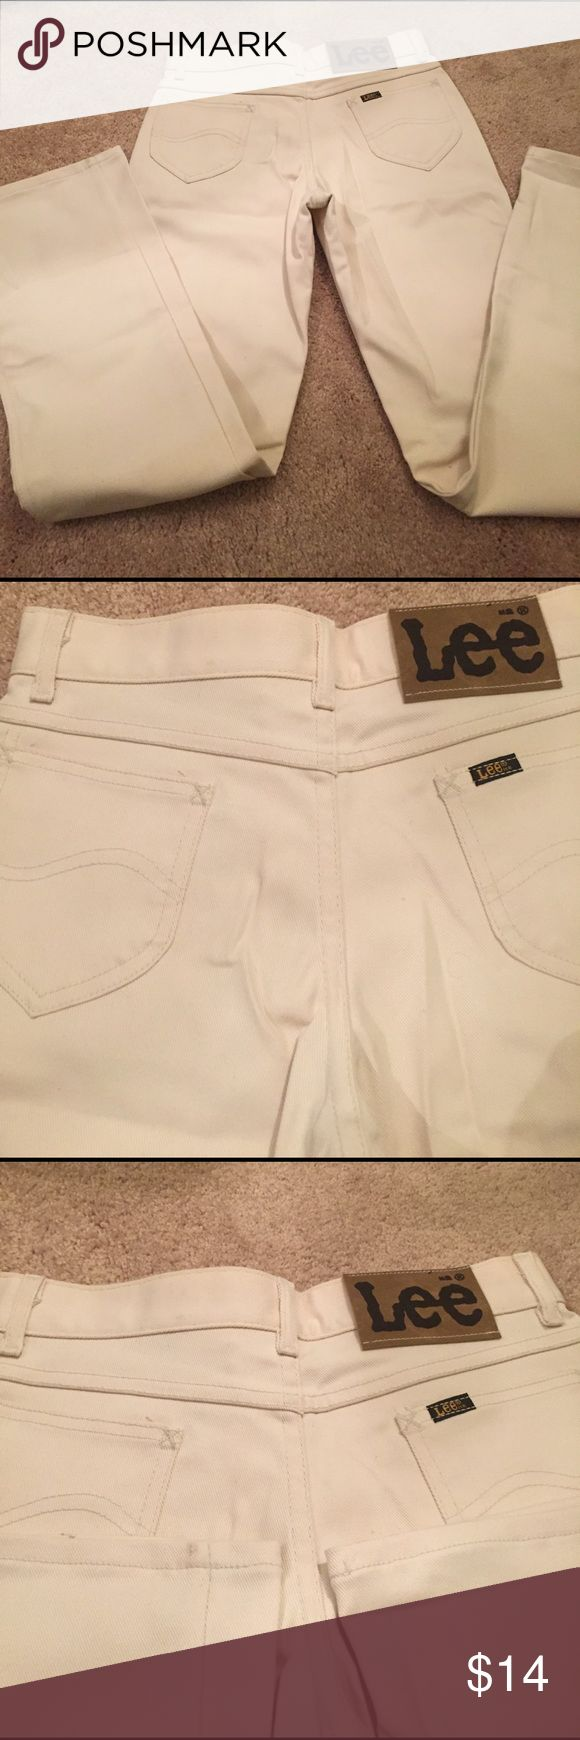 Brand new never worn never washed Lee jeans. Brand-new white Lee jeans never worn never washed in excellent condition. They are going to be a steal at $14 lee Jeans Straight Leg